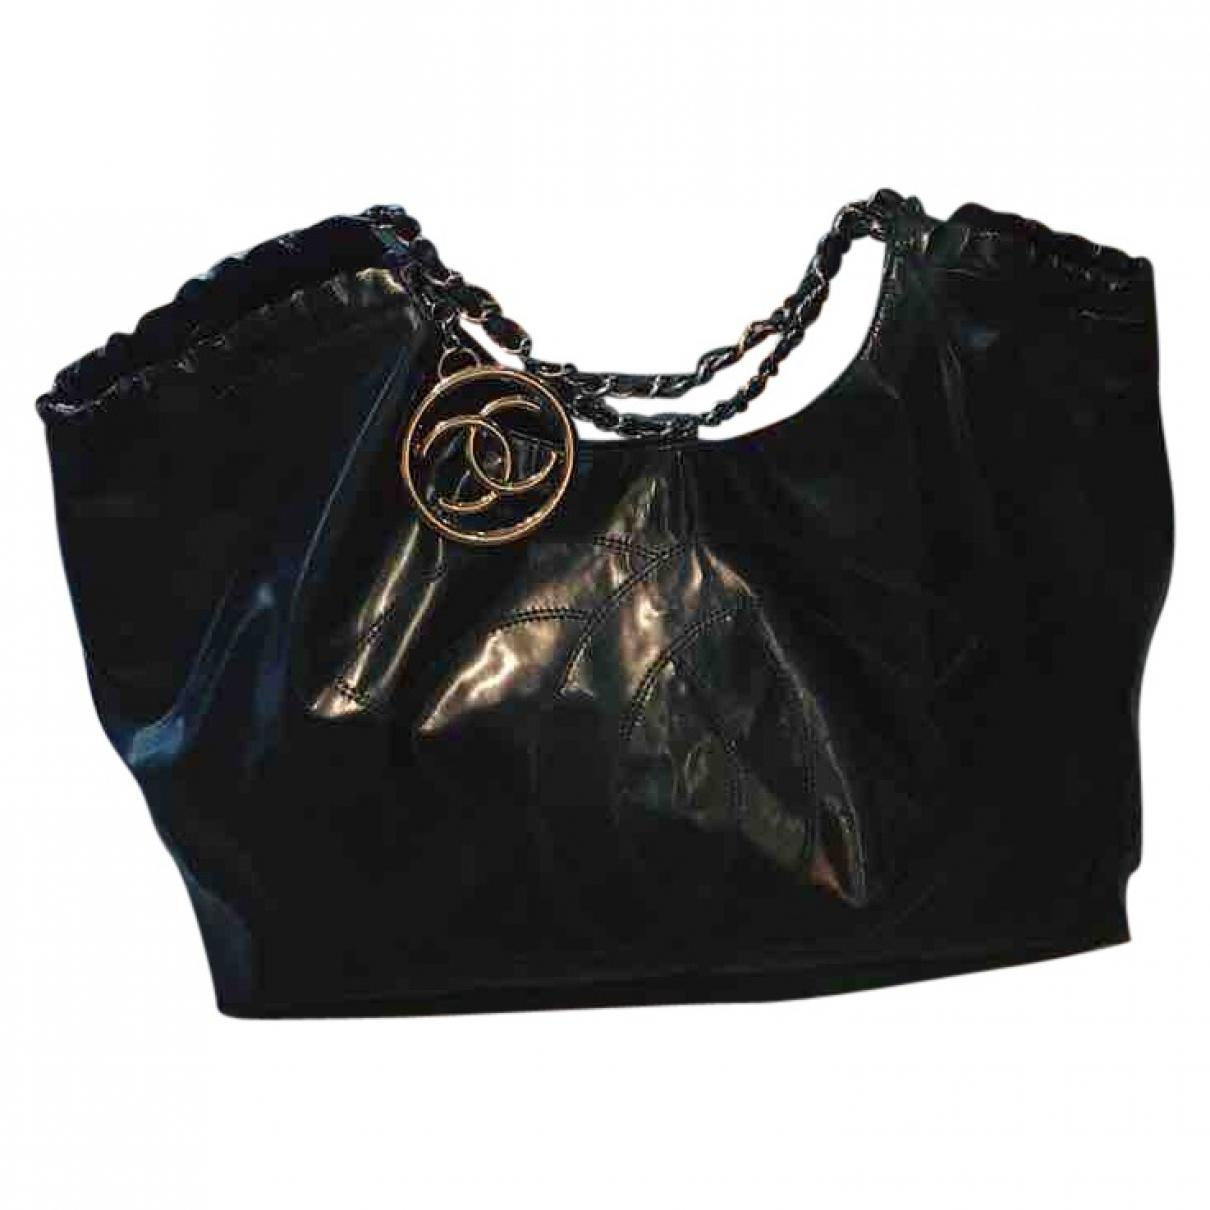 da77de7115df Gallery. Previously sold at: Vestiaire Collective · Women's Black Patent  Leather Handbags ...